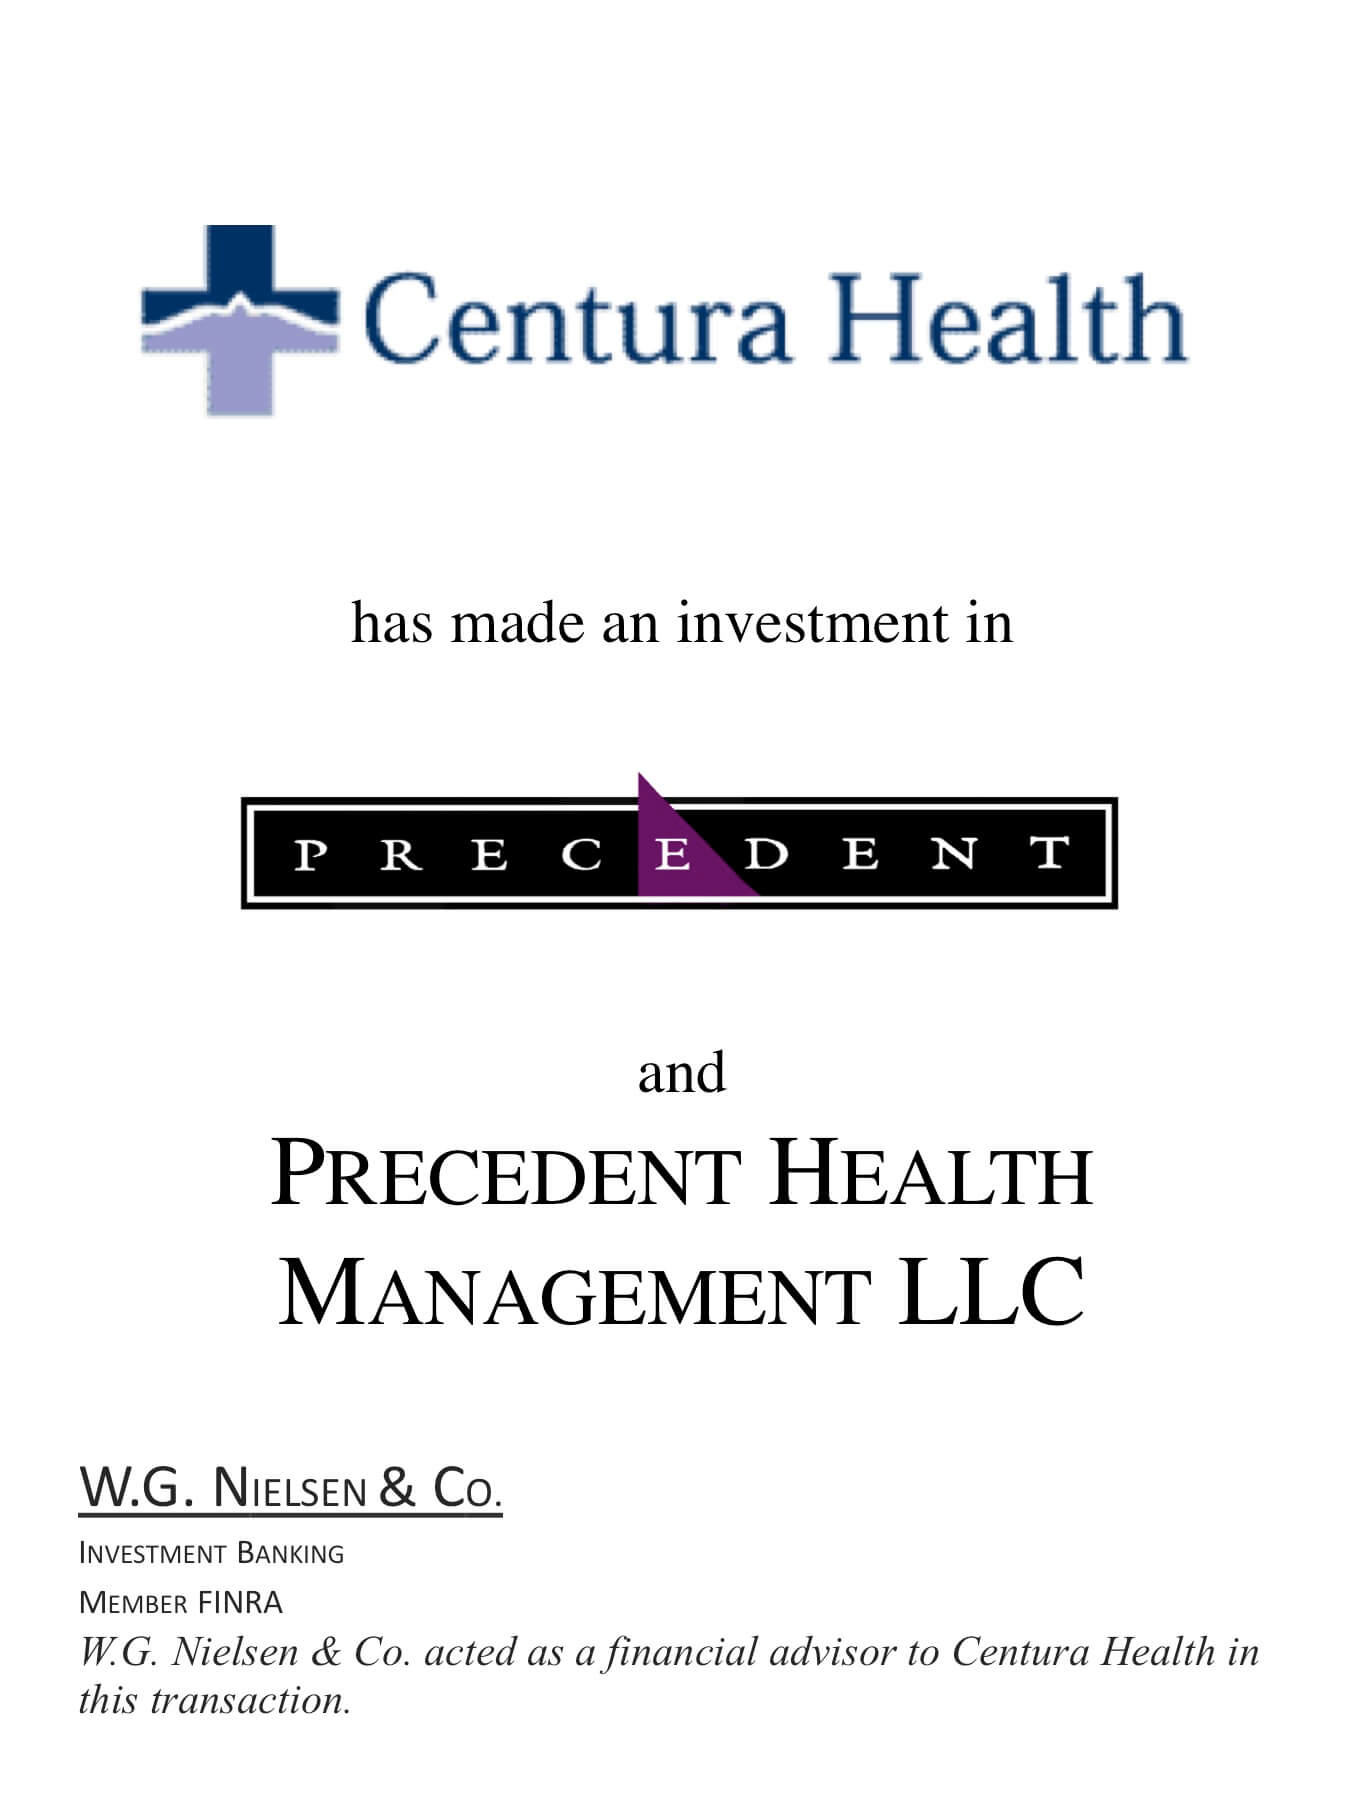 centura health investment banking transaction